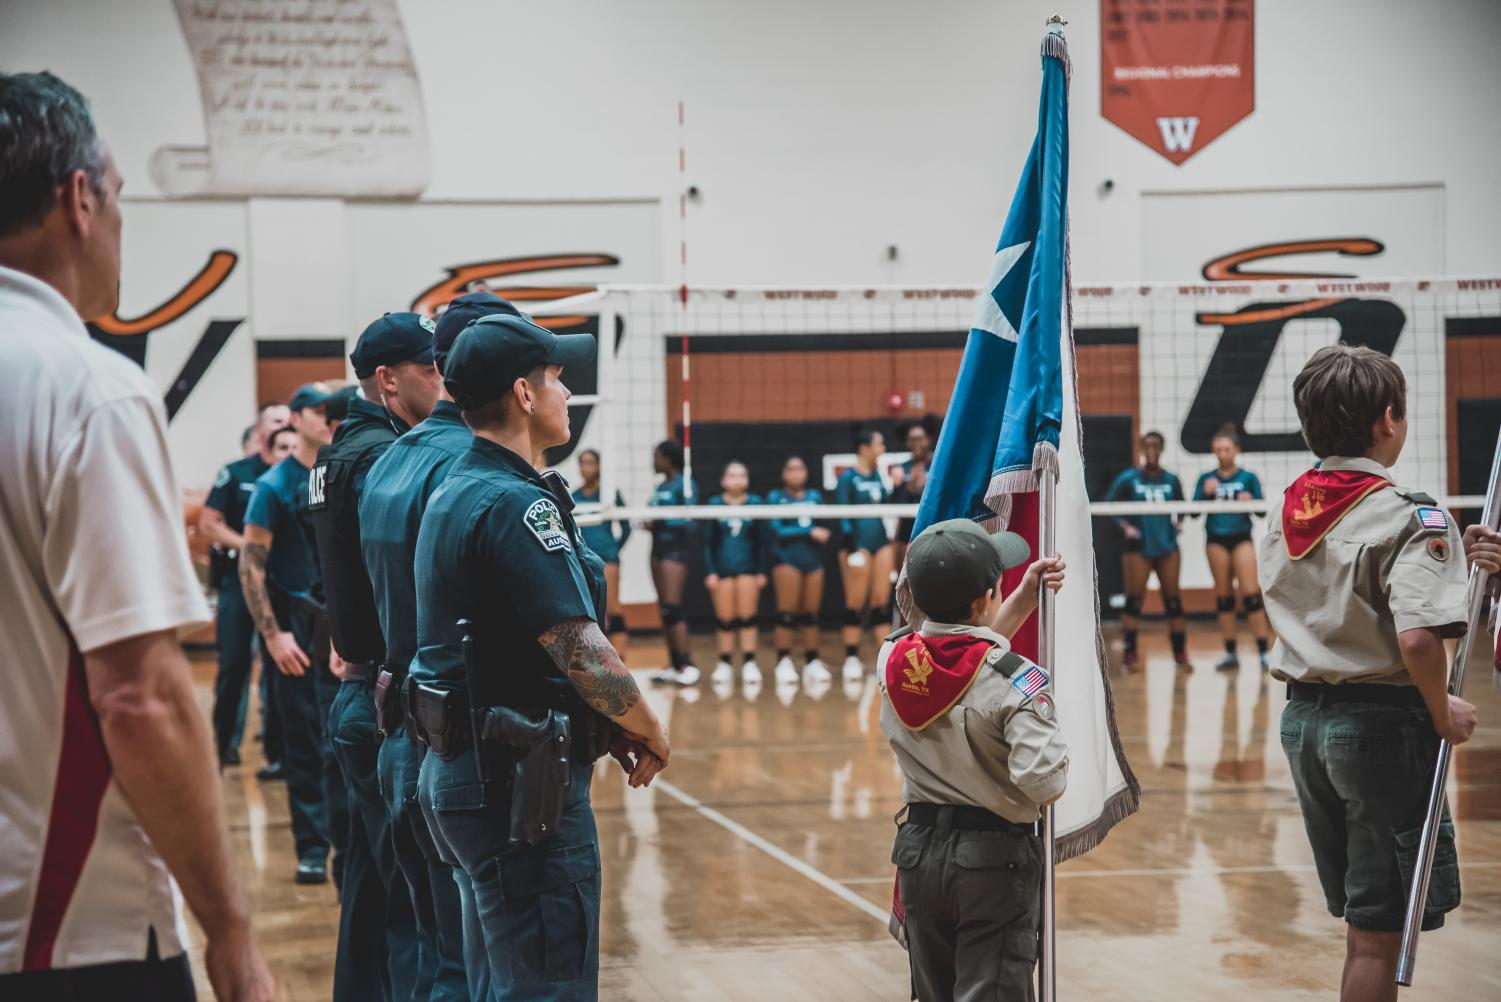 The+police+officers+stand+as+they+boys+scout+troop+raises+their+flags+for+the+National+Anthem.+